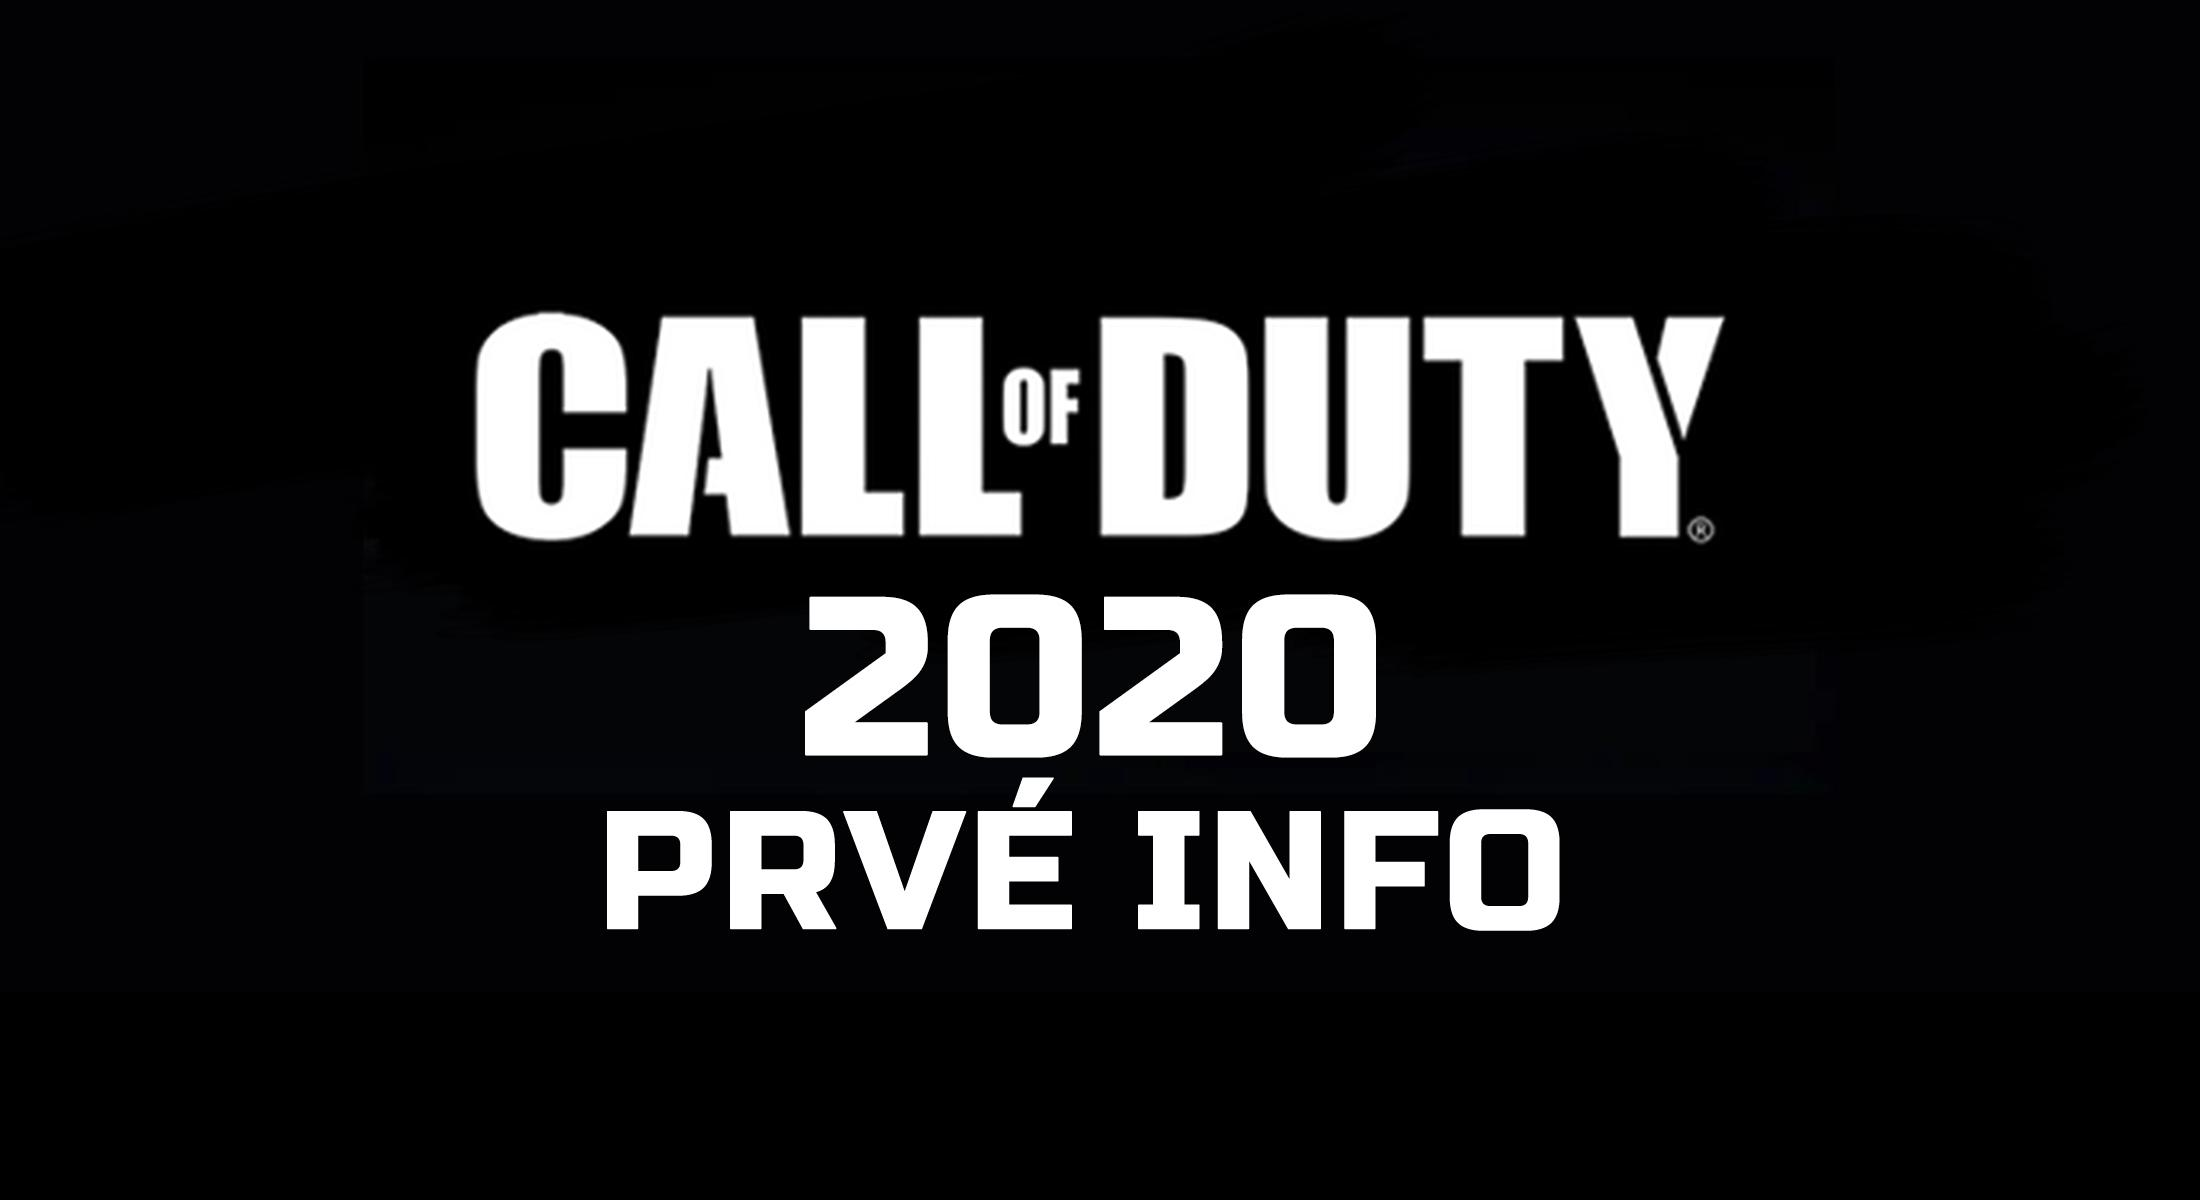 Call of Duty 2020 Logo PNG